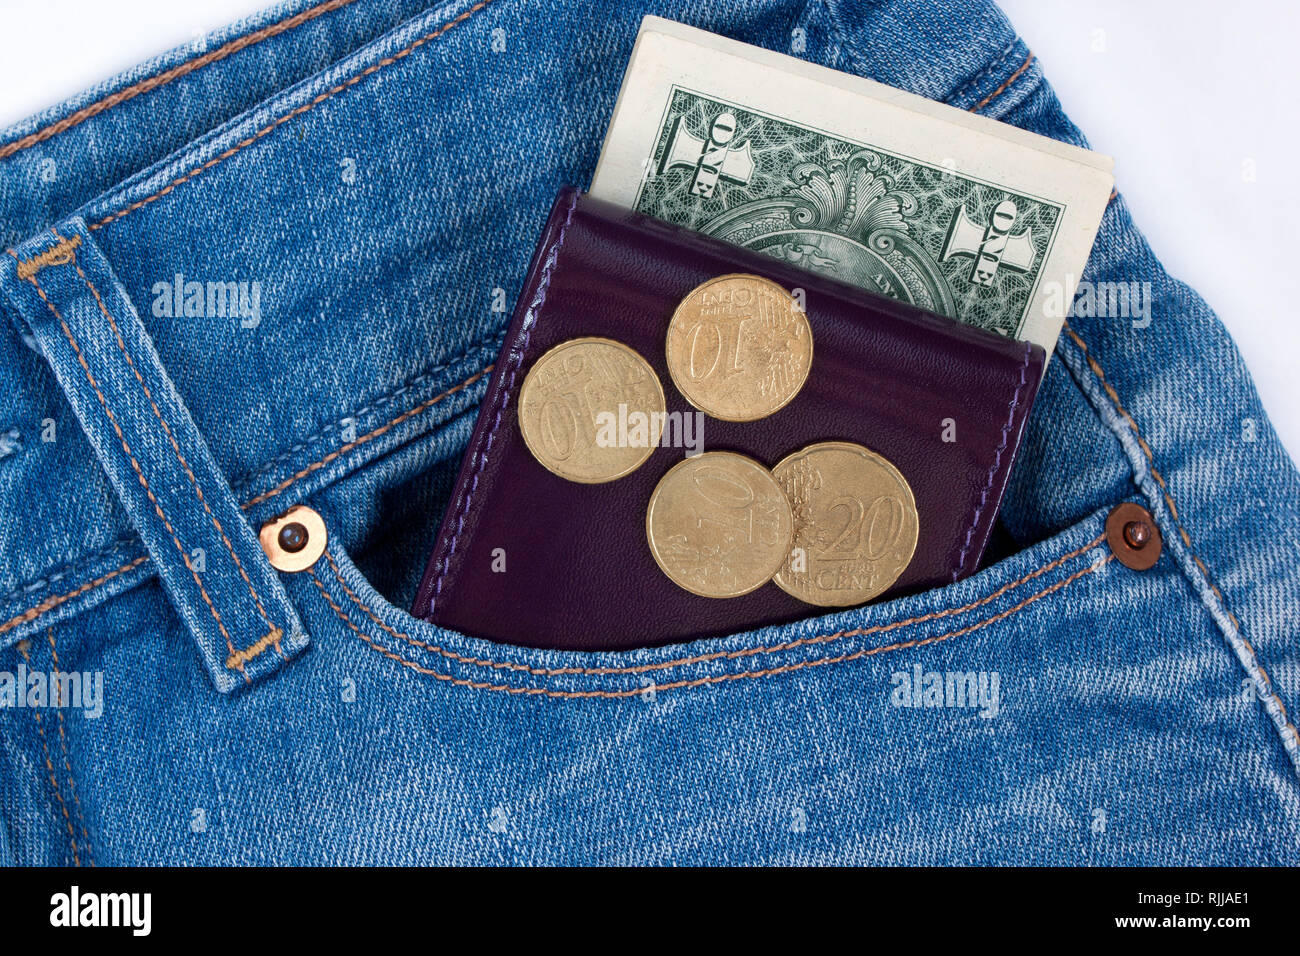 Wallet and ready money are lying in side pocket of blue jeans. Modern lifestyle. - Stock Image